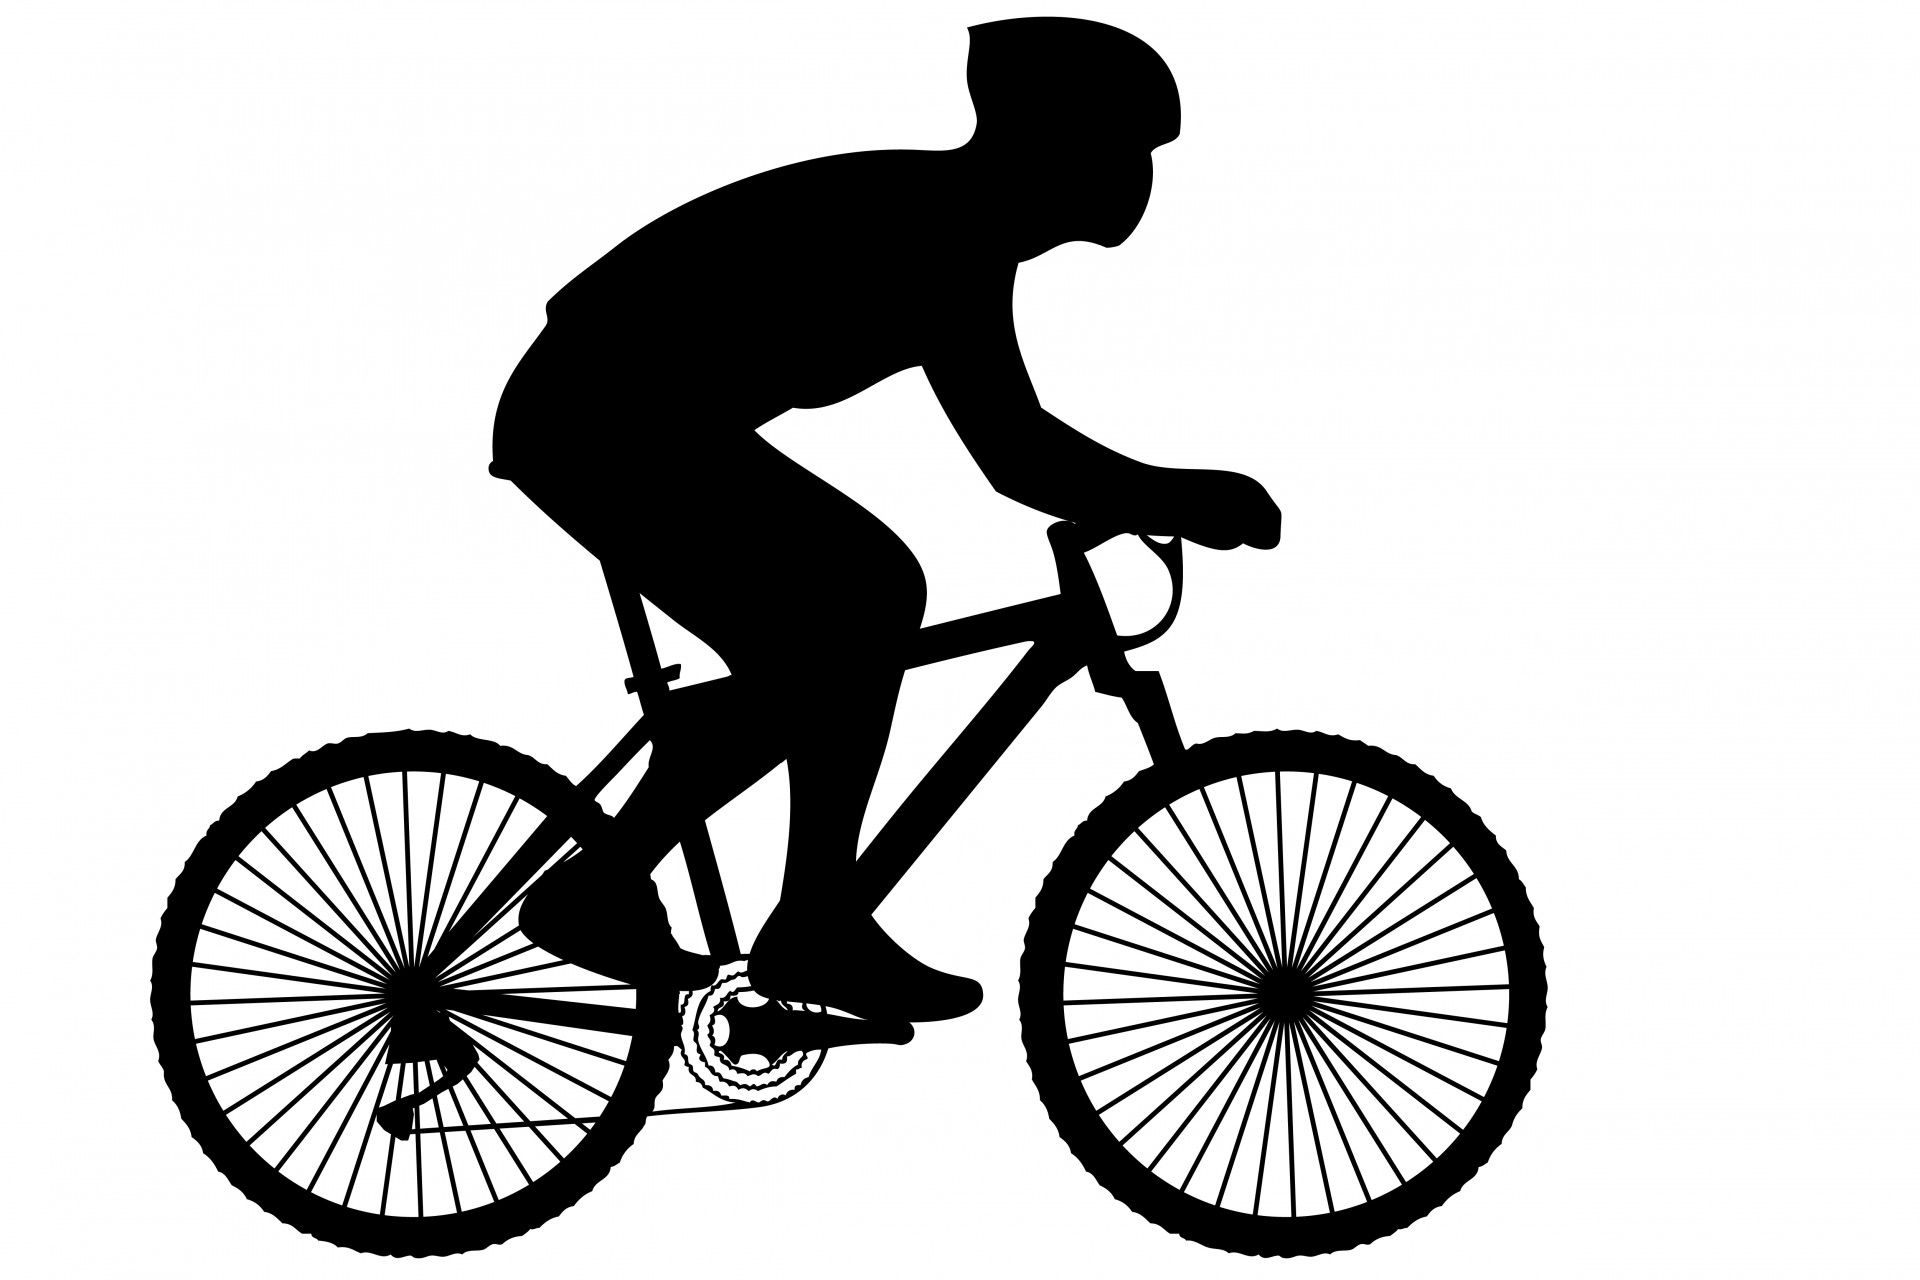 Bicycle clipart cycling. Black silhouette of a